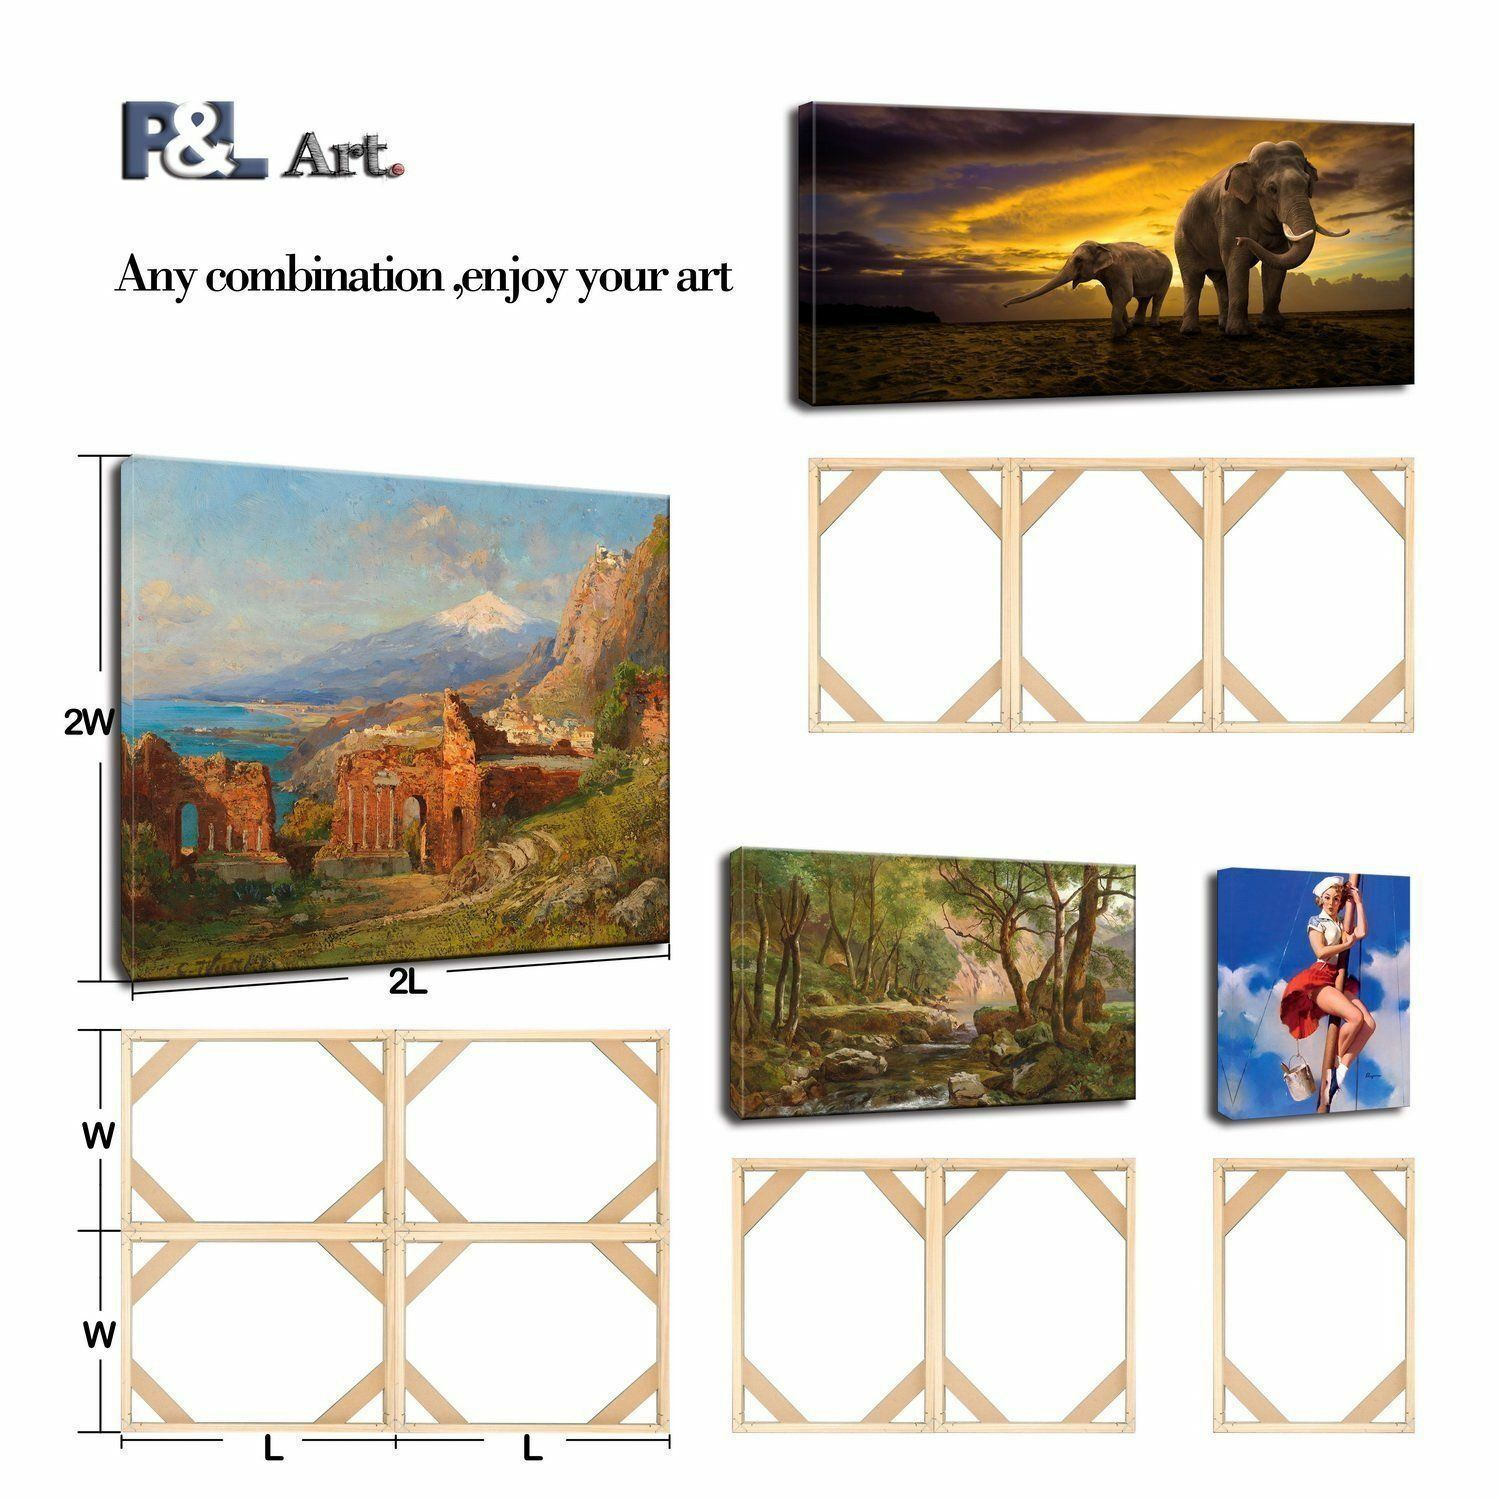 Modern Life Accessory,8x20//20x50cm Canvas Wood Stretcher Bars Painting Wooden Frames for Gallery Wrap Oil Painting Posters